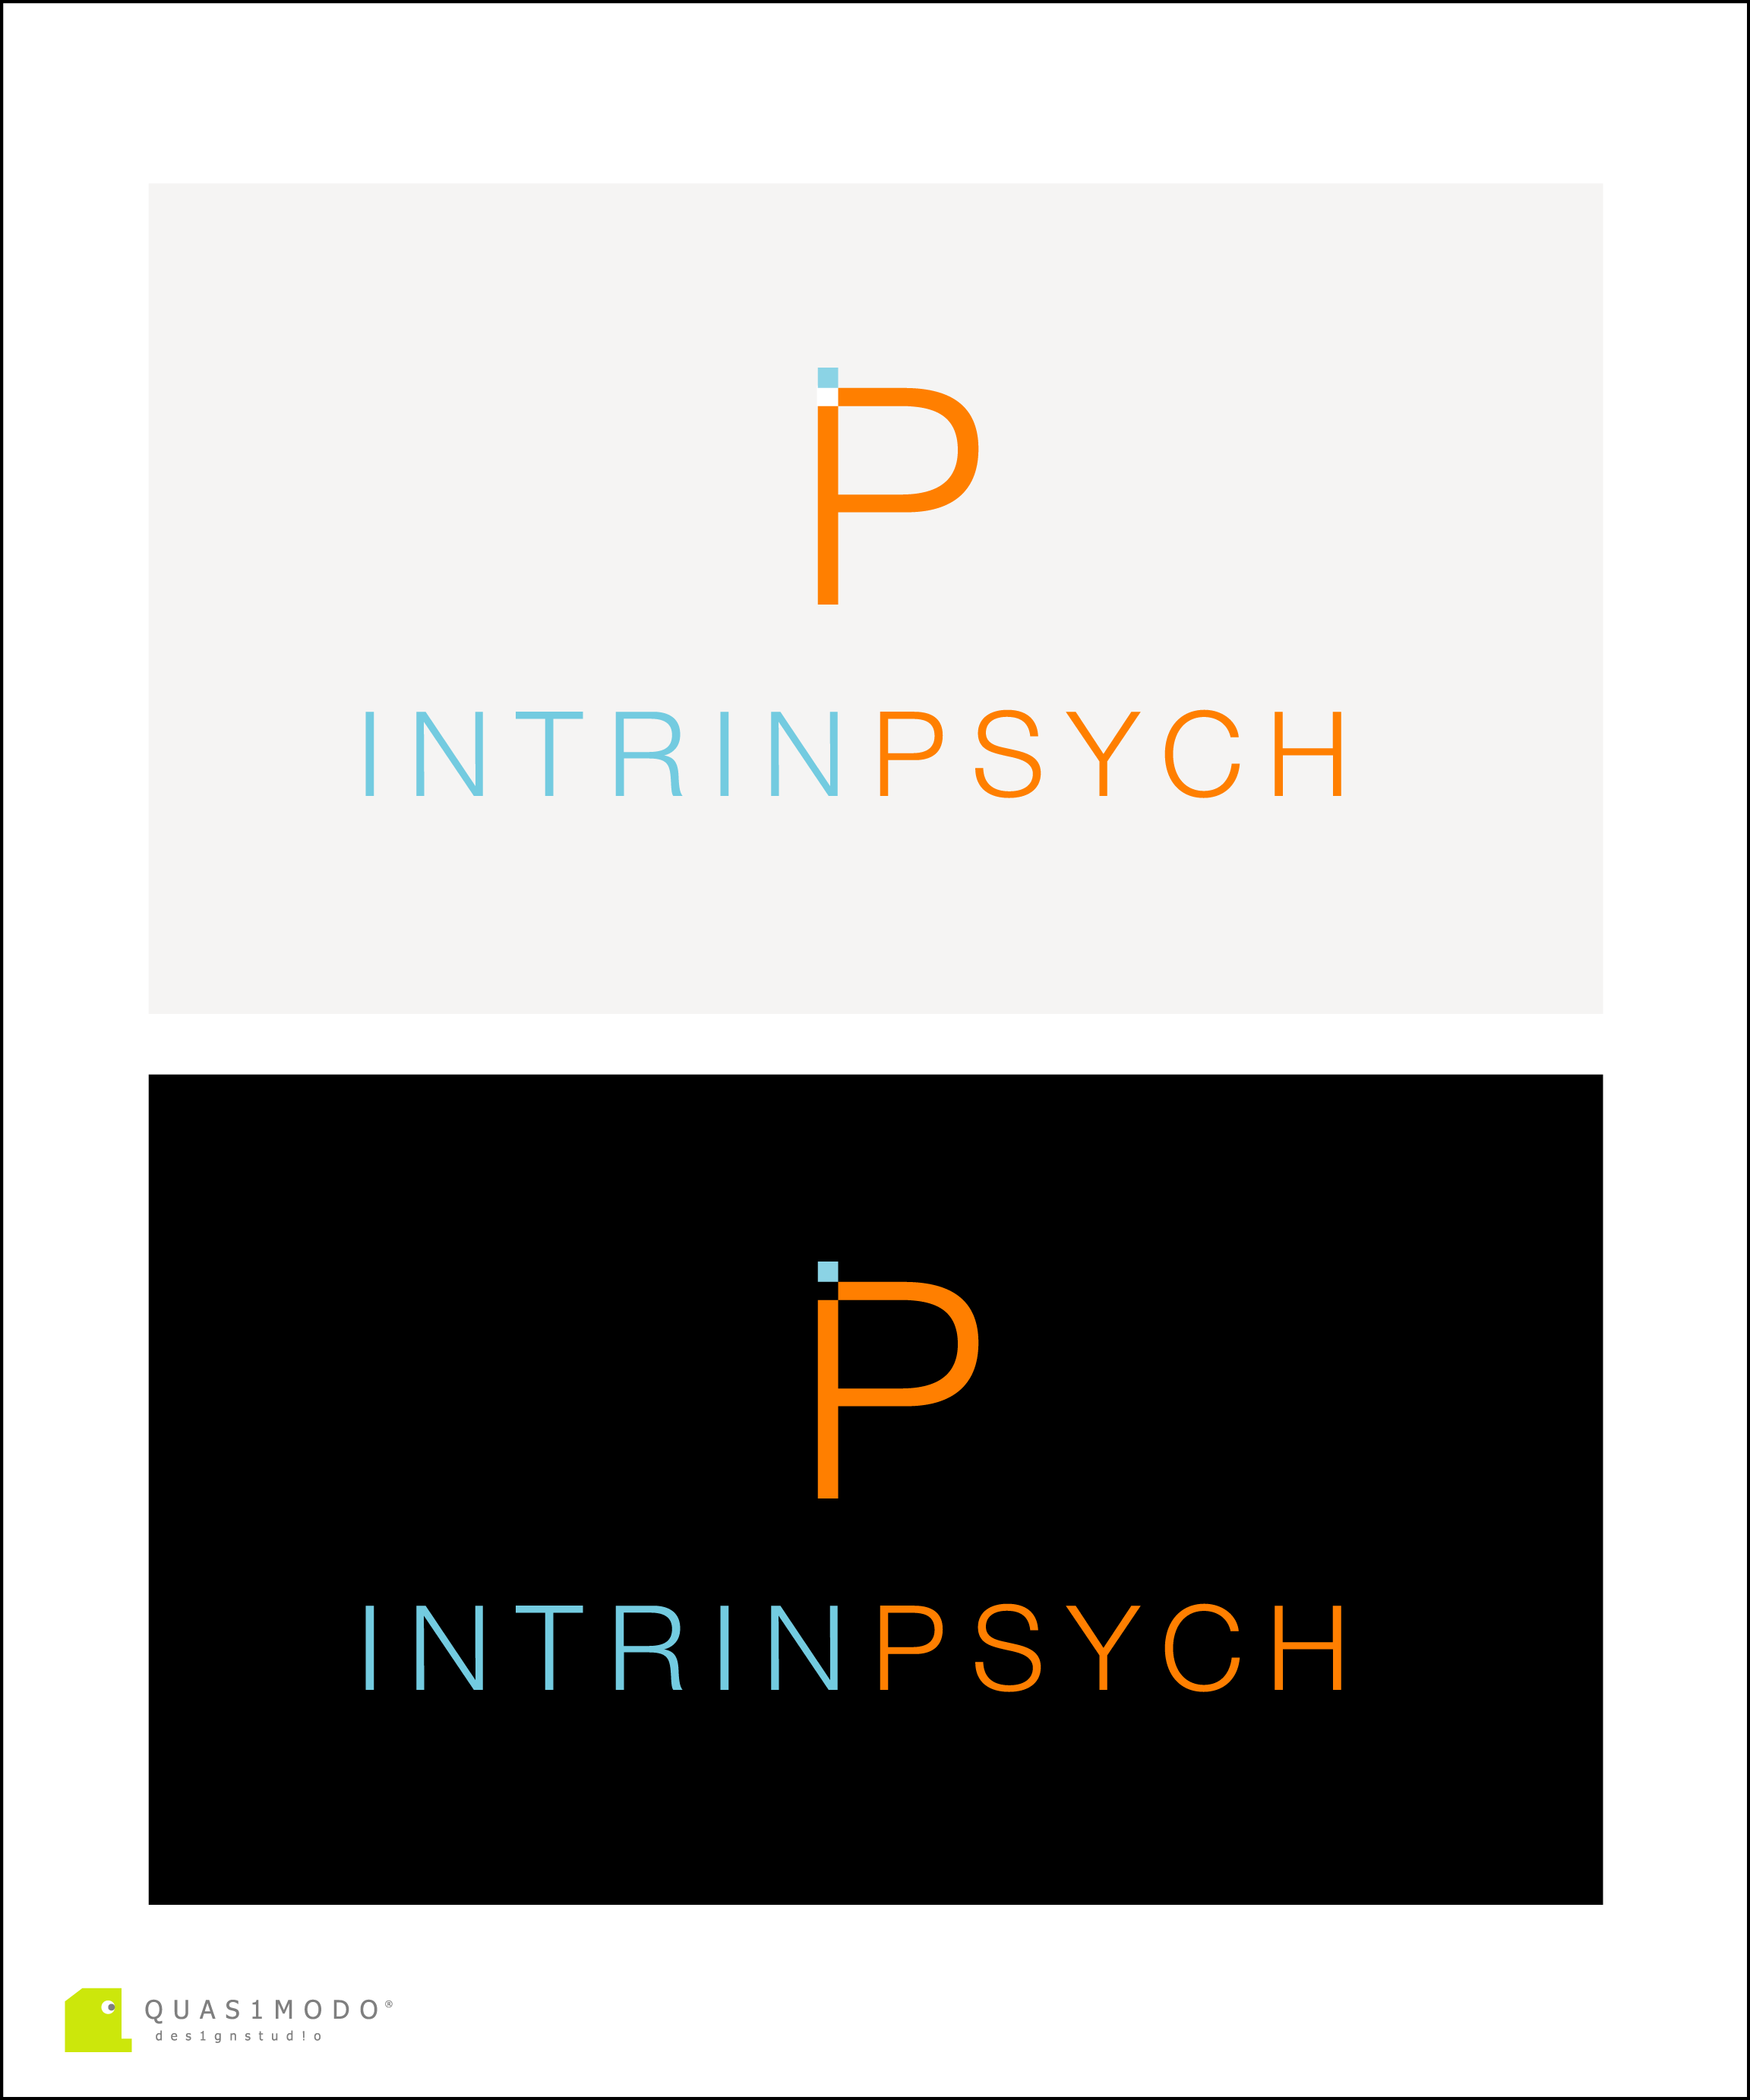 Logo Design by DIMITRIOS PAPADOPOULOS - Entry No. 208 in the Logo Design Contest New Logo Design for IntrinPsych.